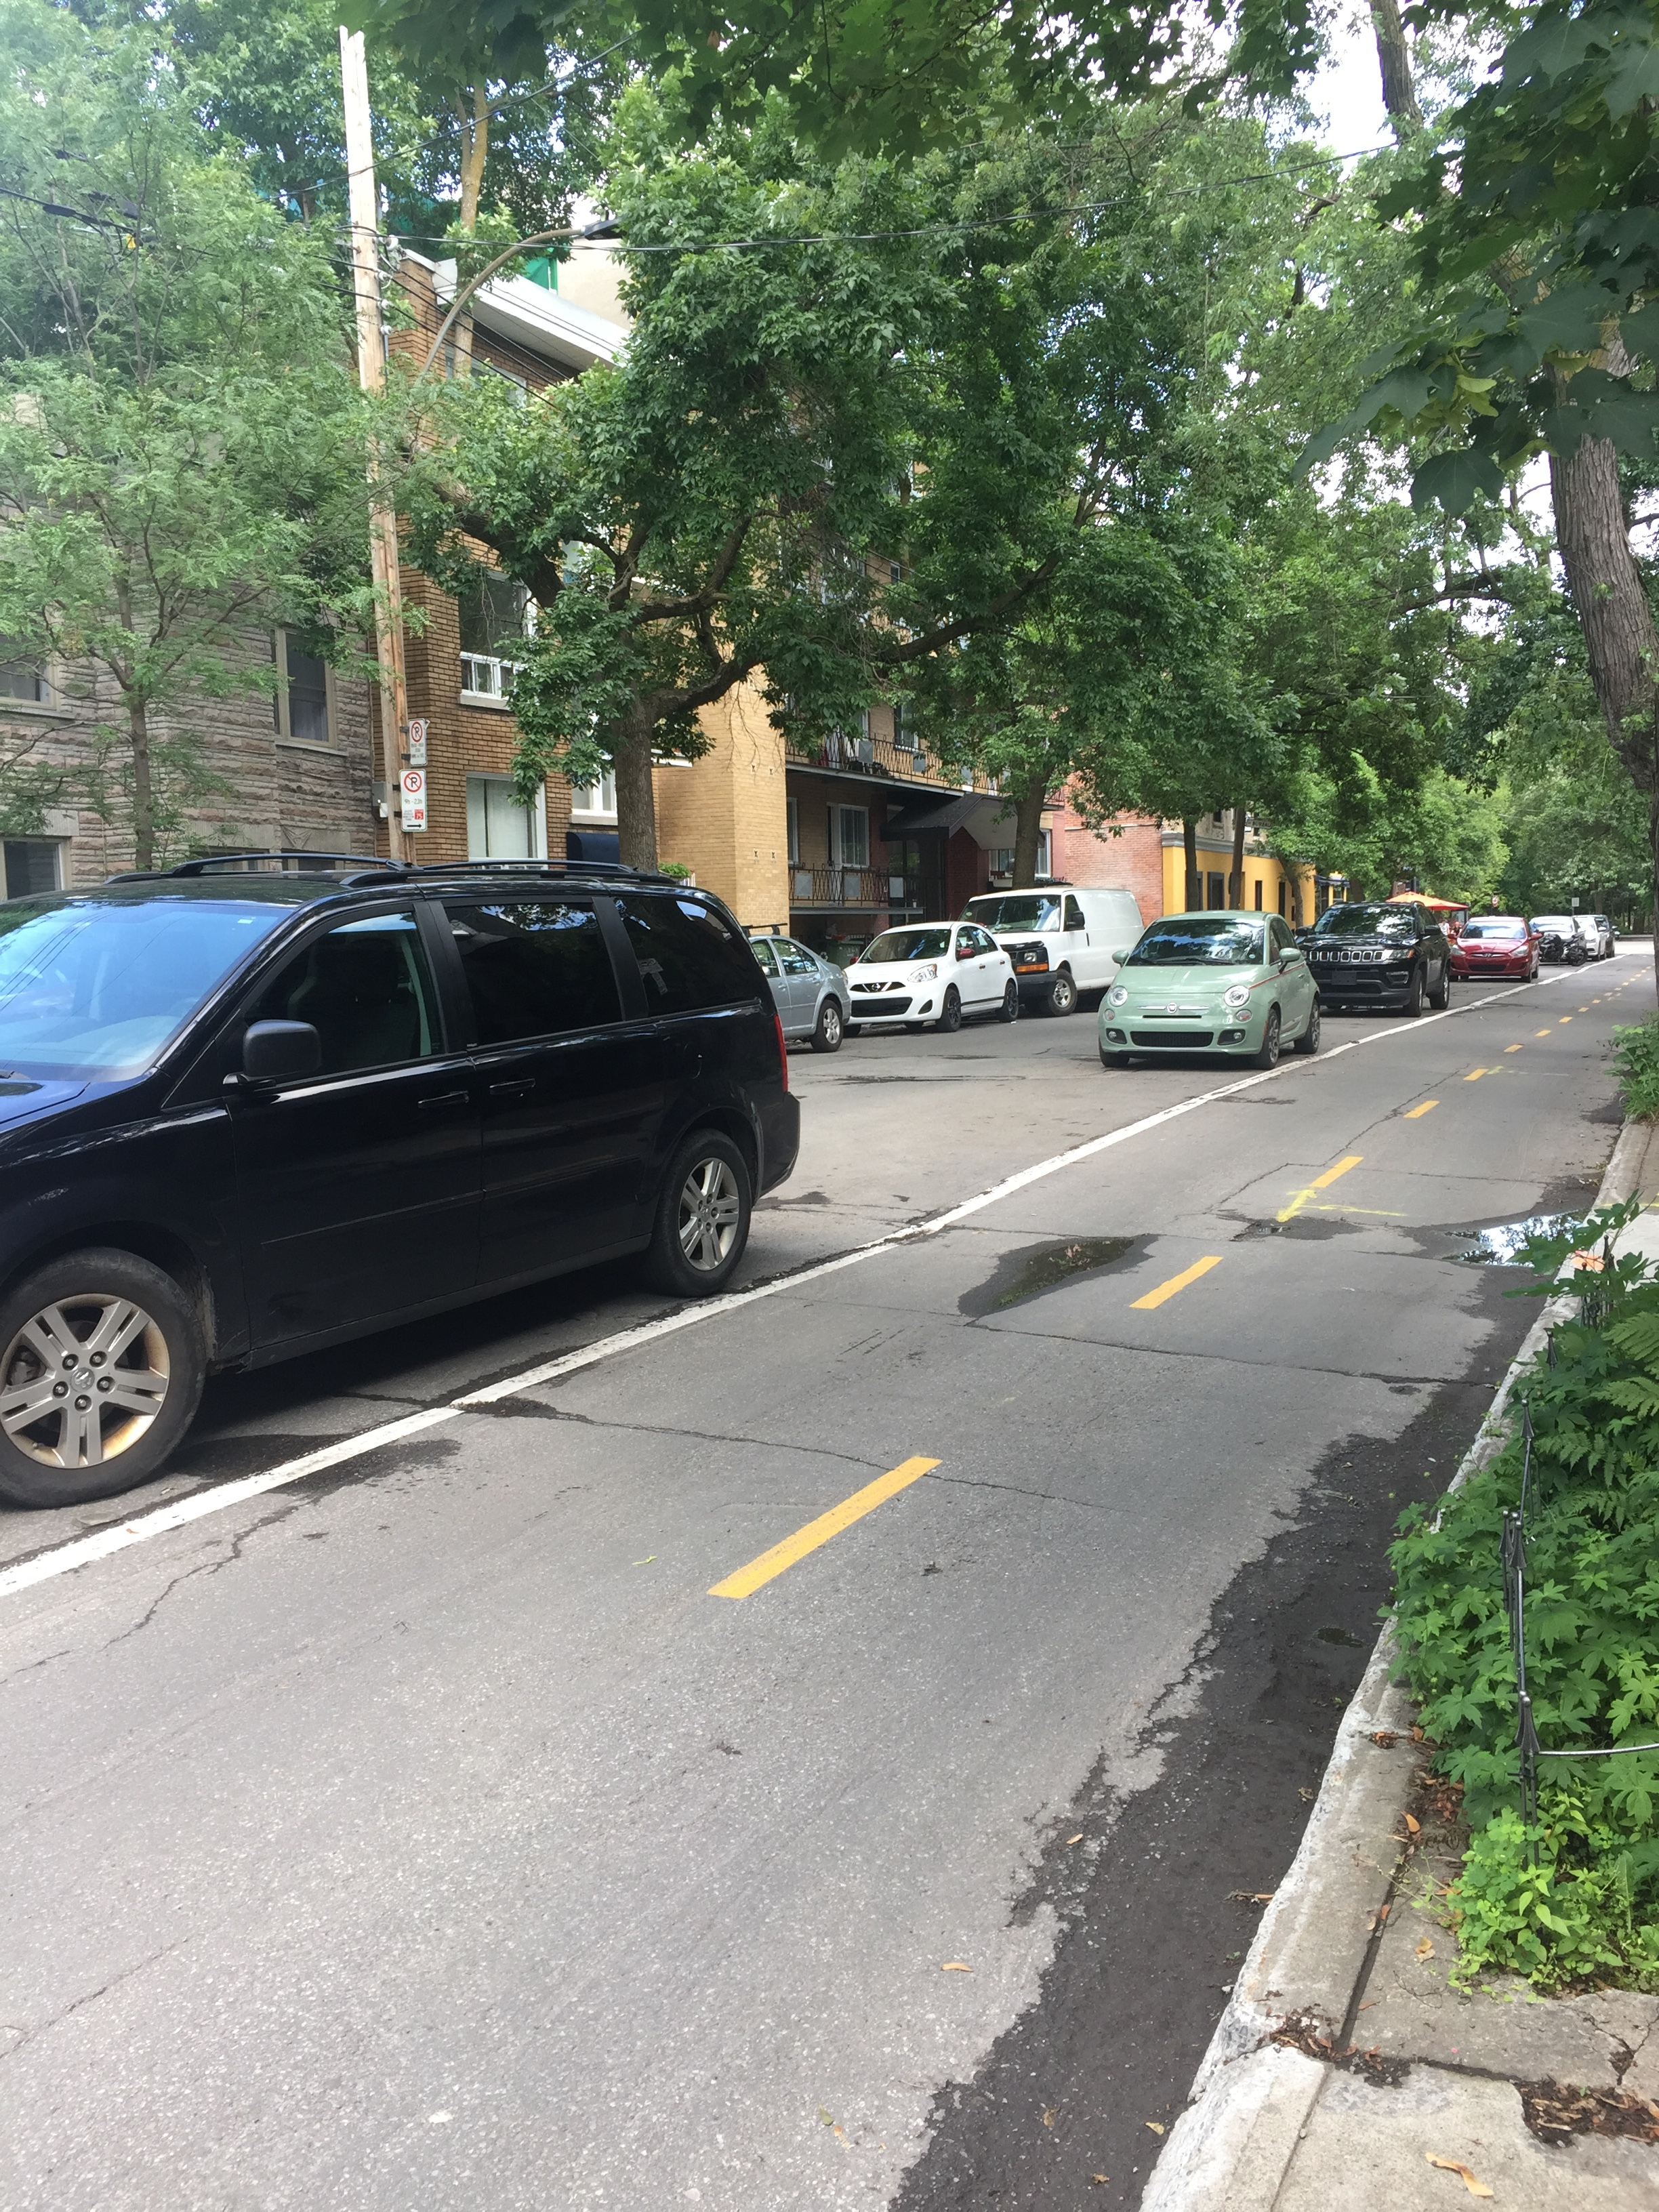 That would be street parking BETWEEN the bike and motor vehicle driving lanes, protectively separating cyclists and cars.